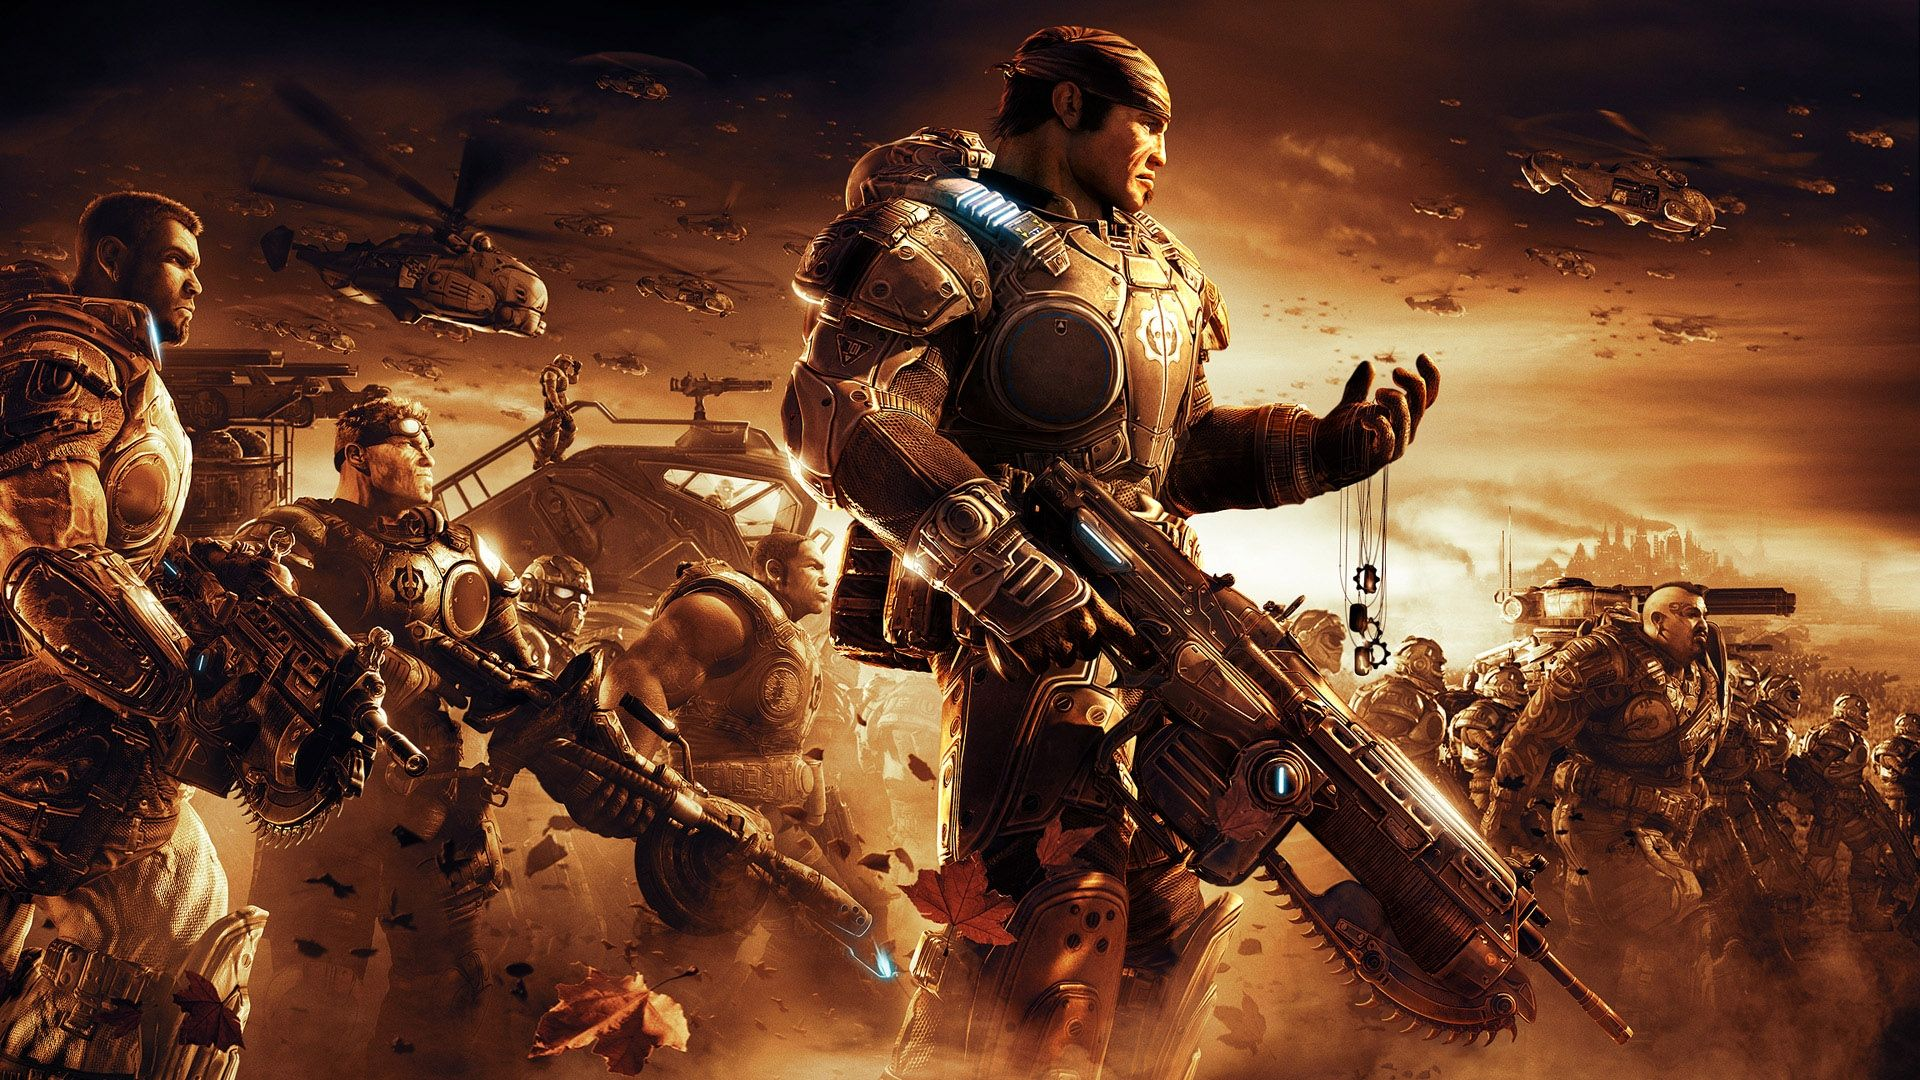 Pin By Sean On Gears Of War Brothers To The End Gears Of War Gears Of War 3 Wallpaper Pictures